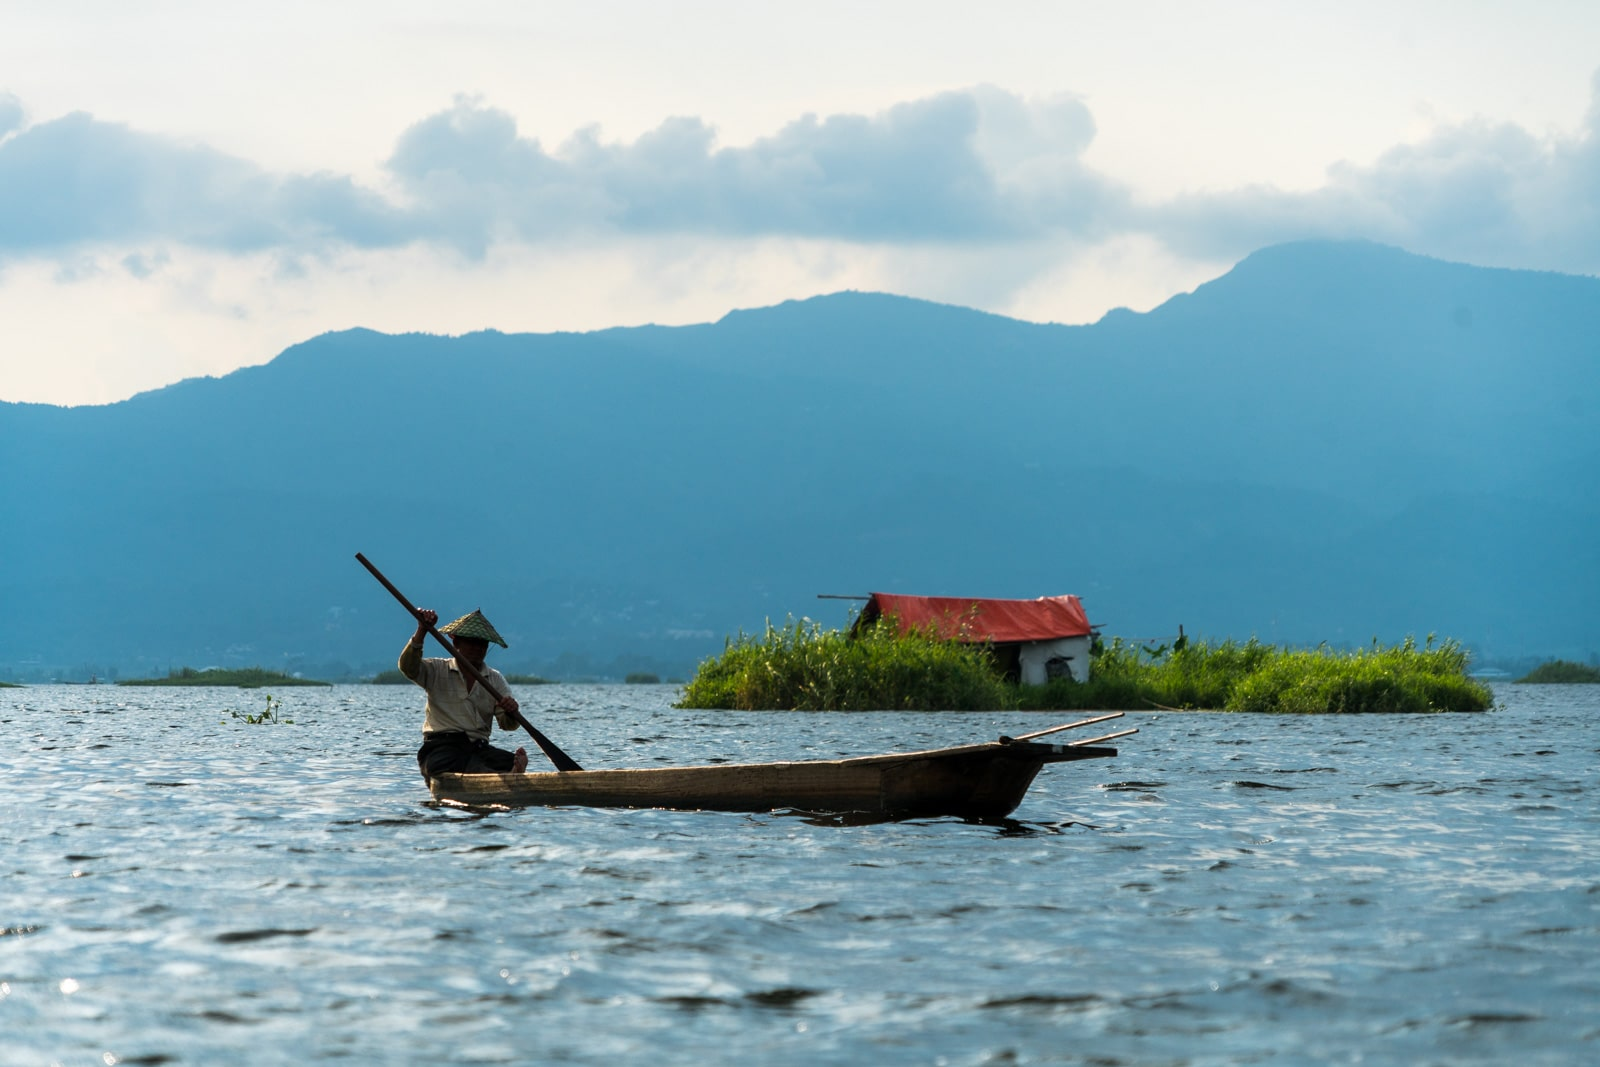 Why you need to visit Loktak Lake, Manipur, Northeast India - Fisherman and red hut on the lake - Lost With Purpose